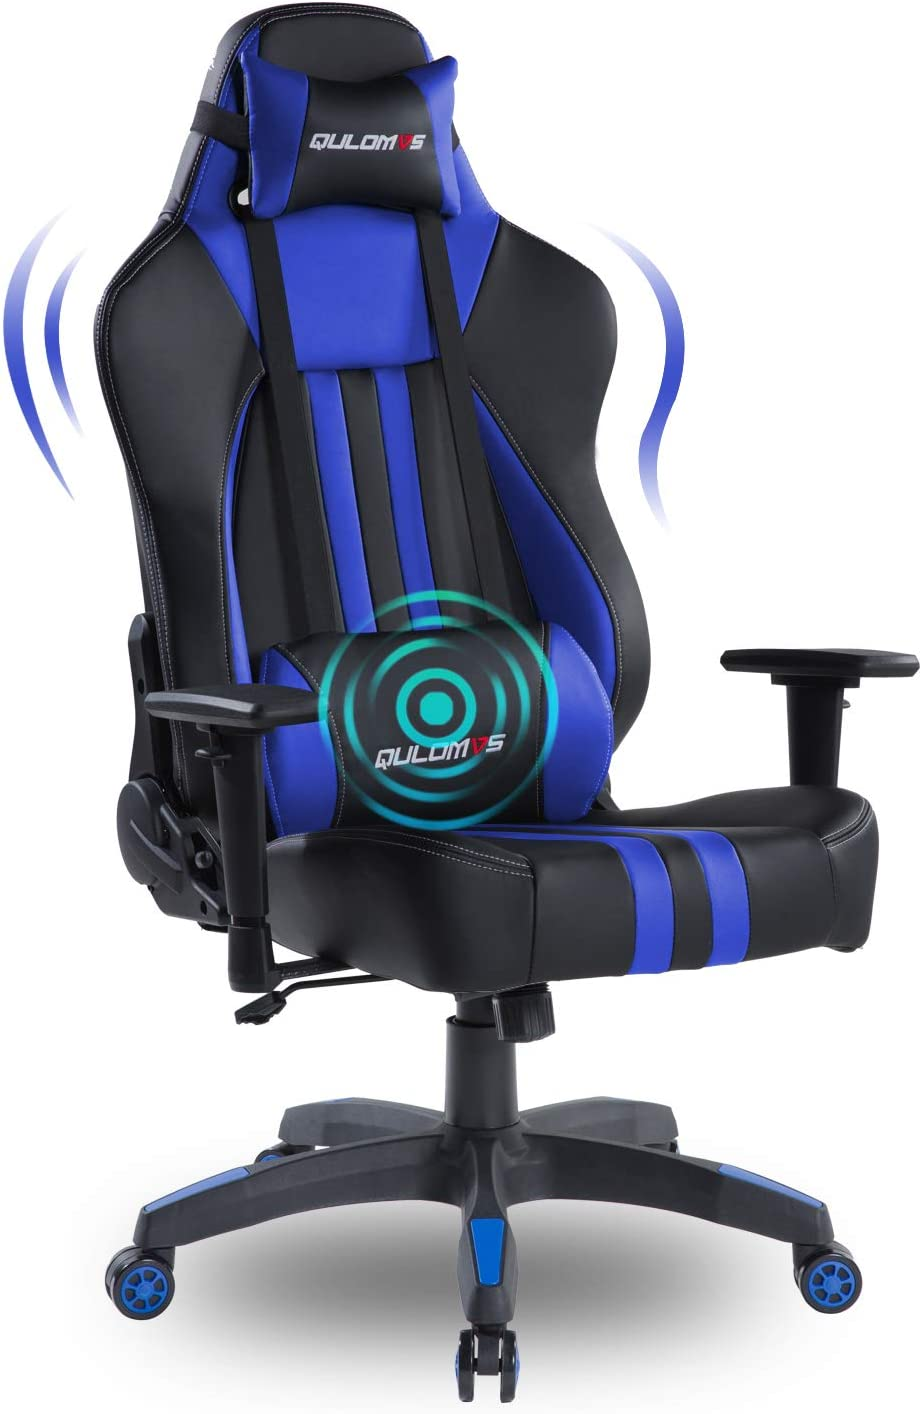 Qulomvs Big and Tall Gaming Chair for Adults 400LBS Heavy Duty Computer Massage Video Game Chair Ergonomic PC Racing Gamer Chair Headrest and Lumbar Support (Blue)